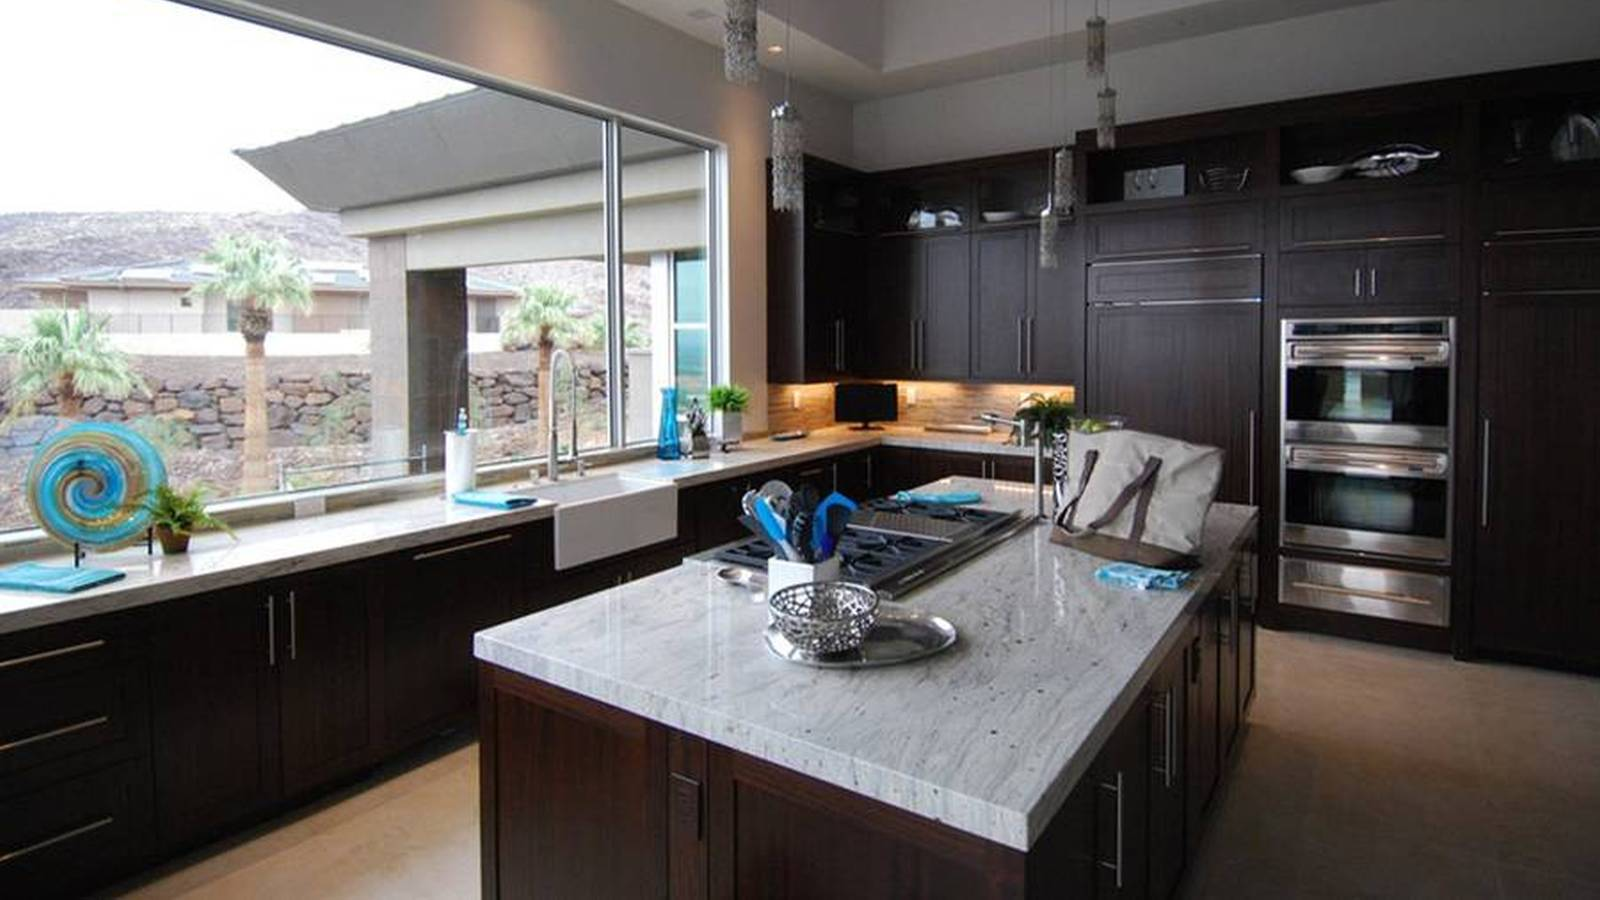 Contemporary kitchen with dark wood cabinets and white